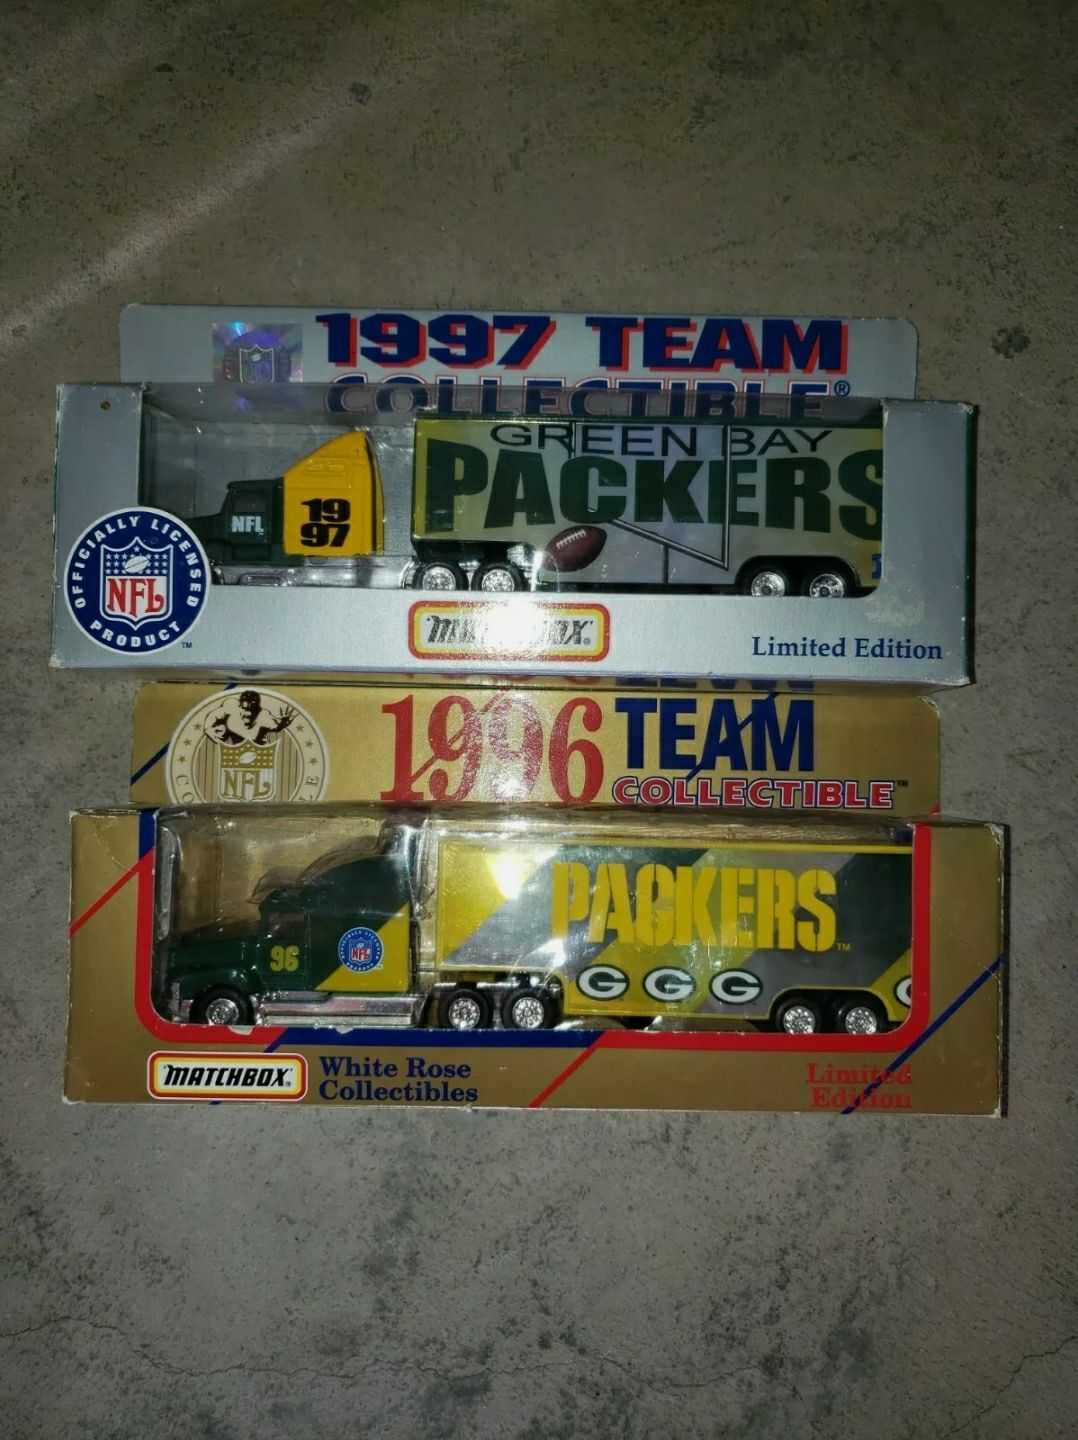 Packers toy trucks